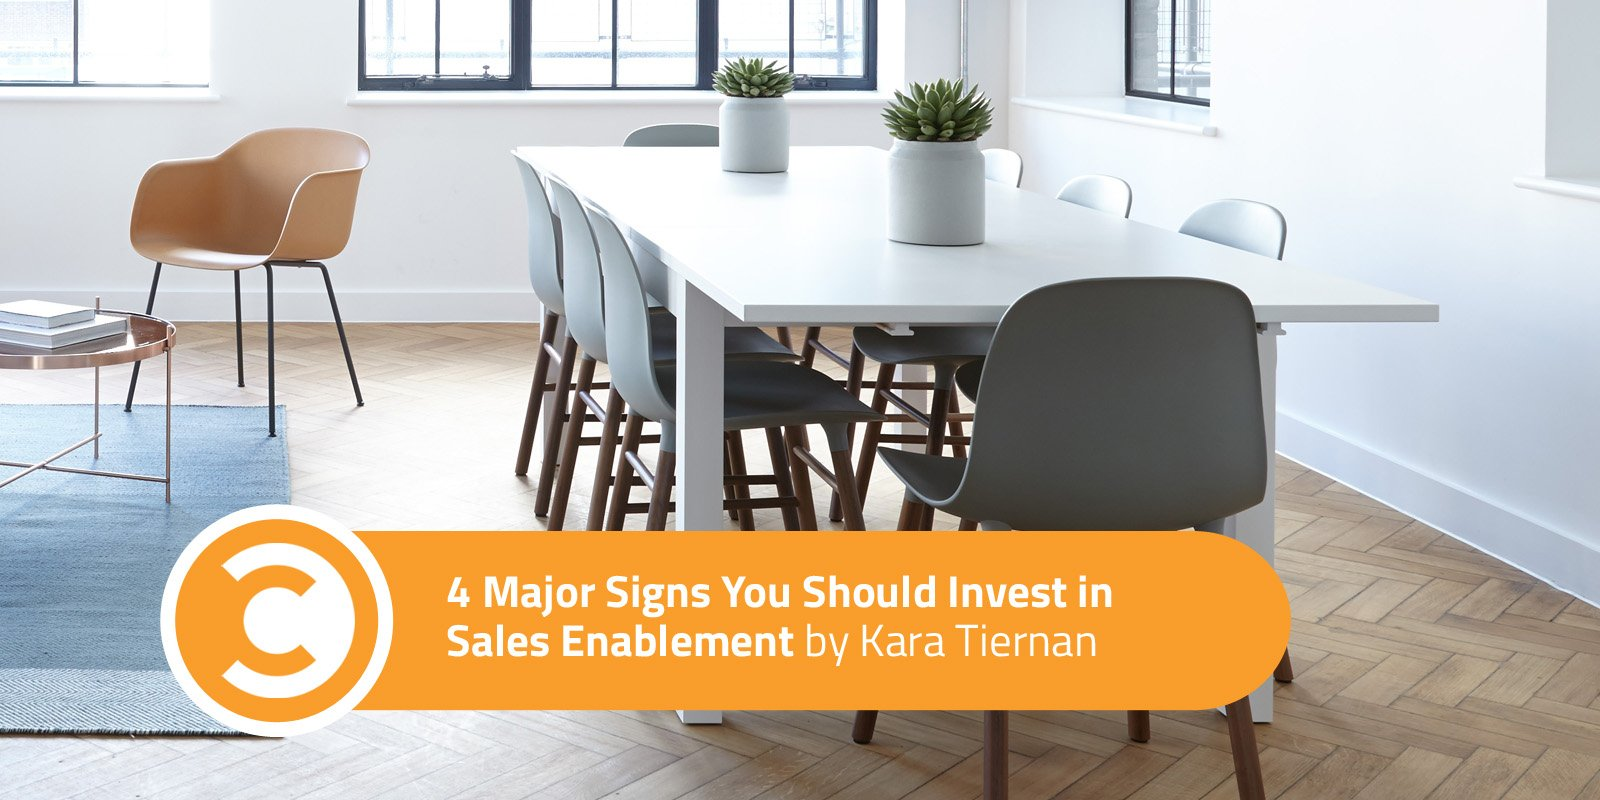 4 Major Signs You Should Invest in Sales Enablement